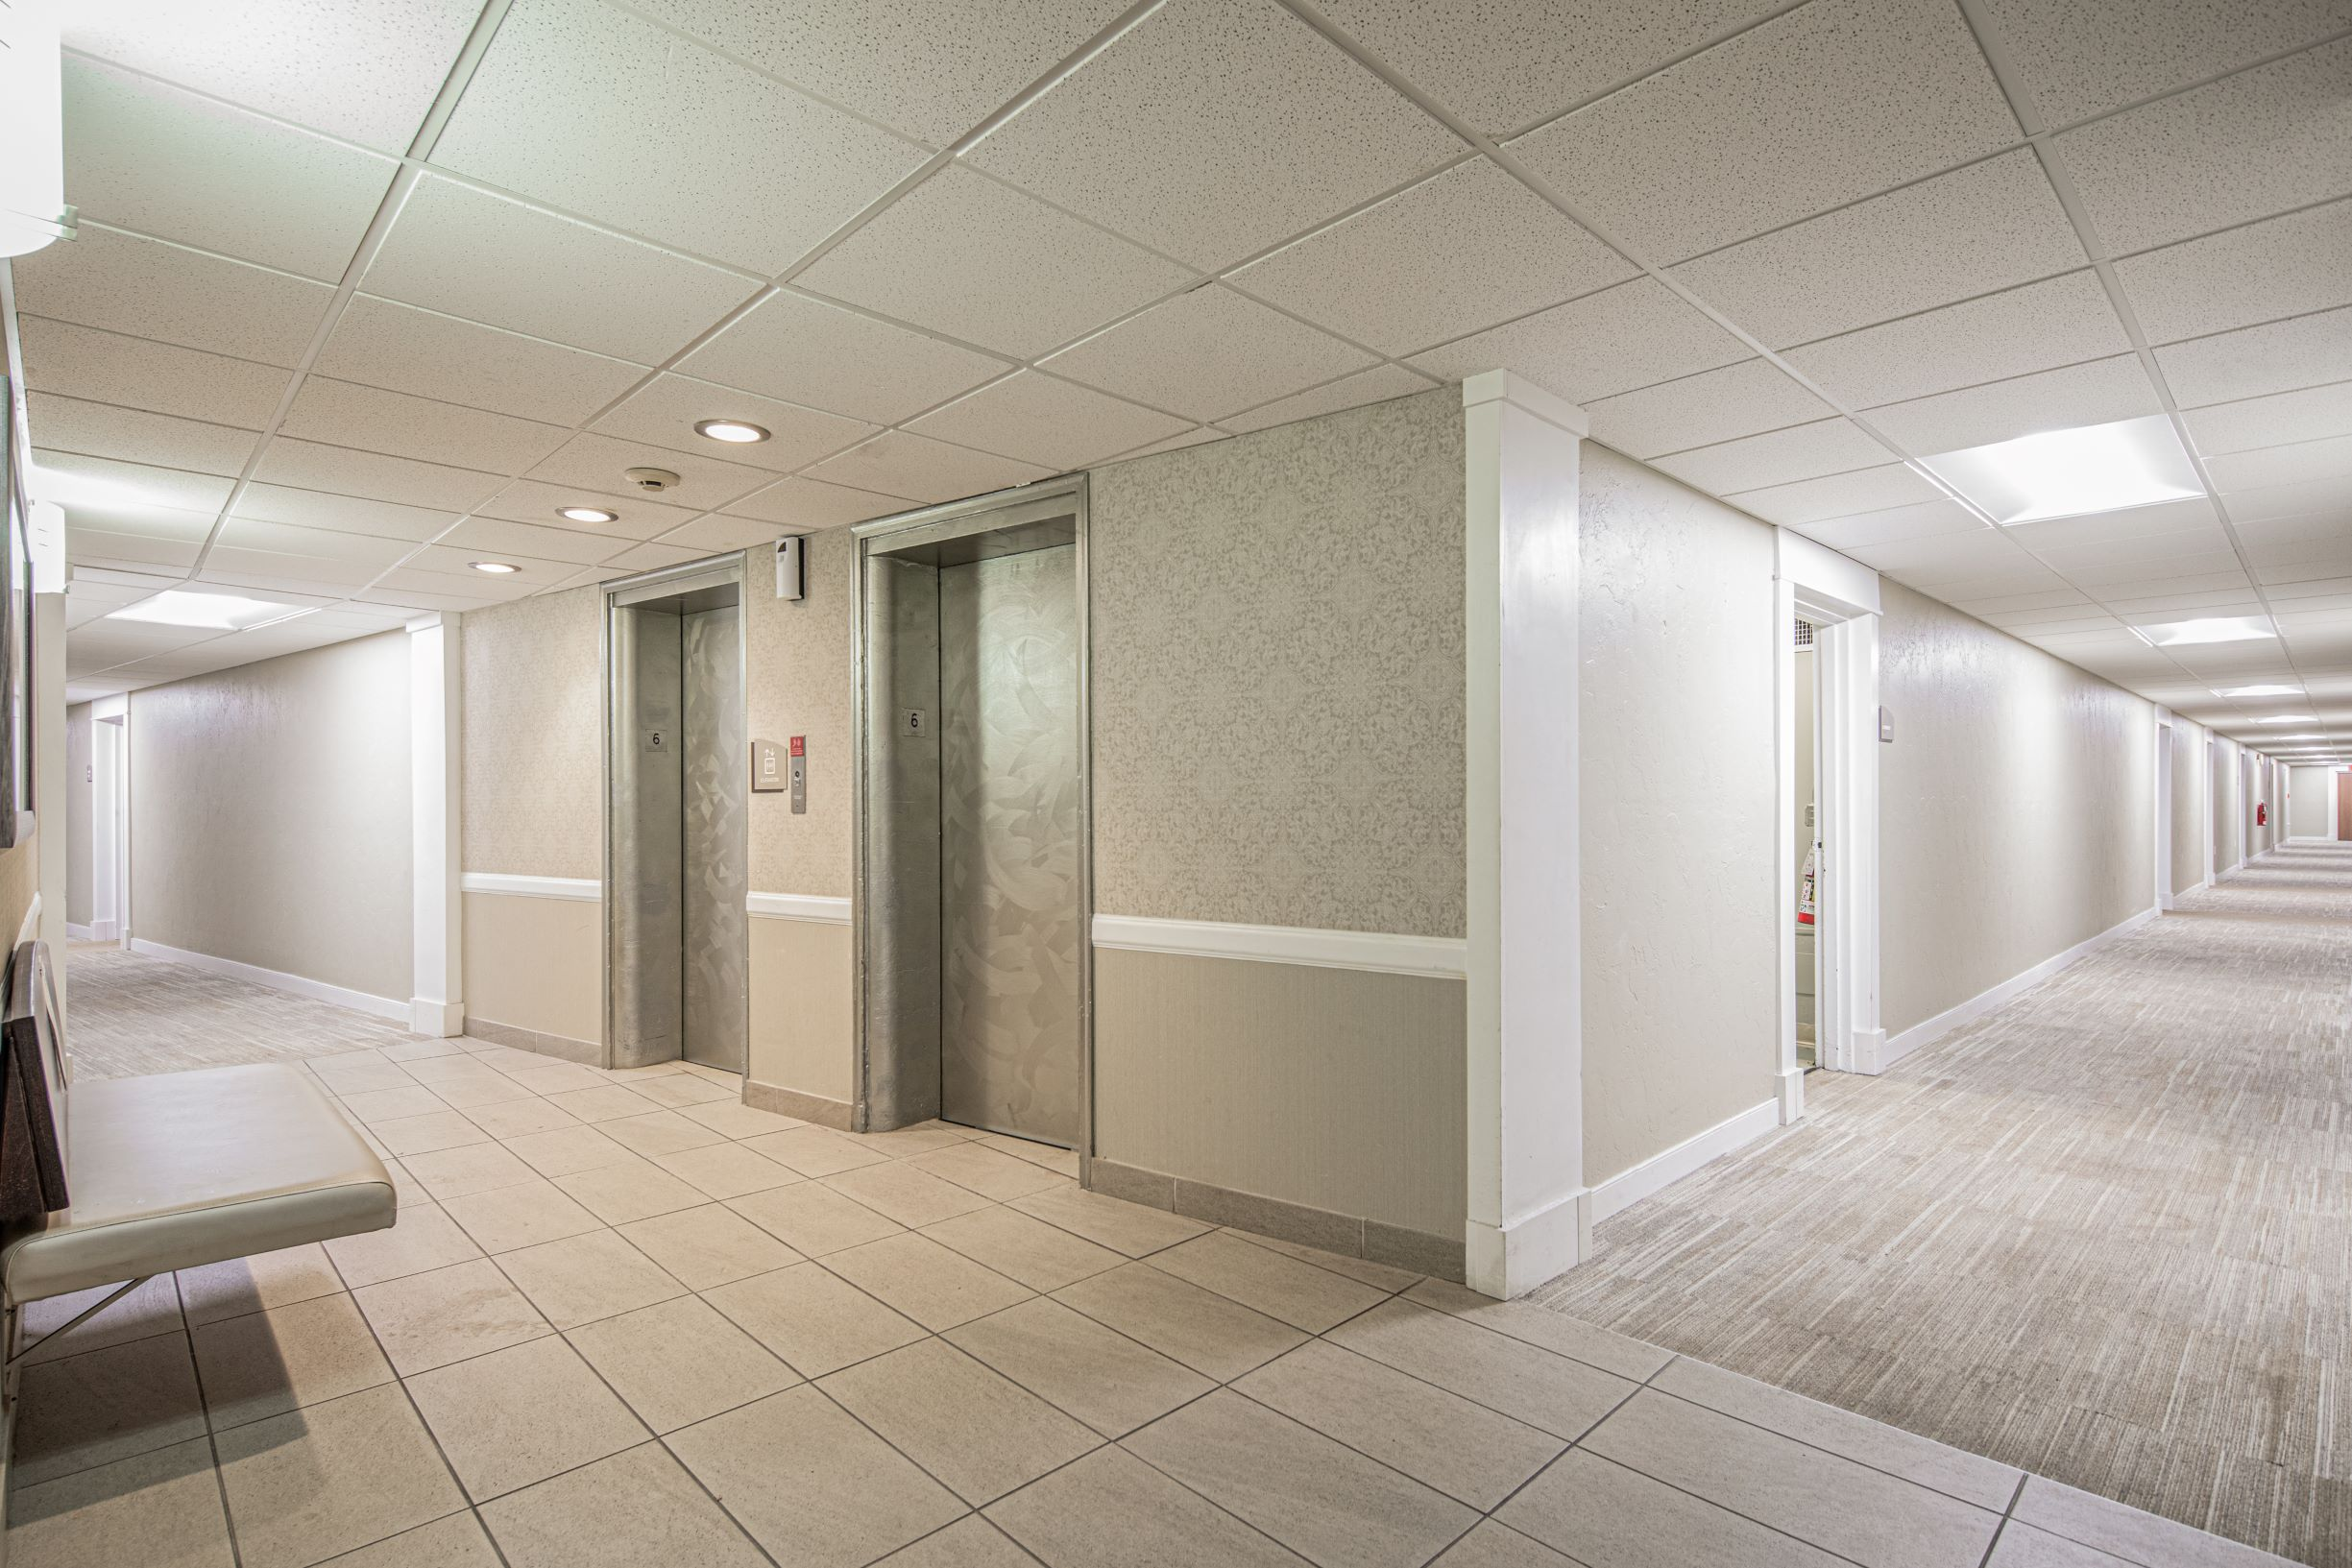 Bright hallways with two elevator banks